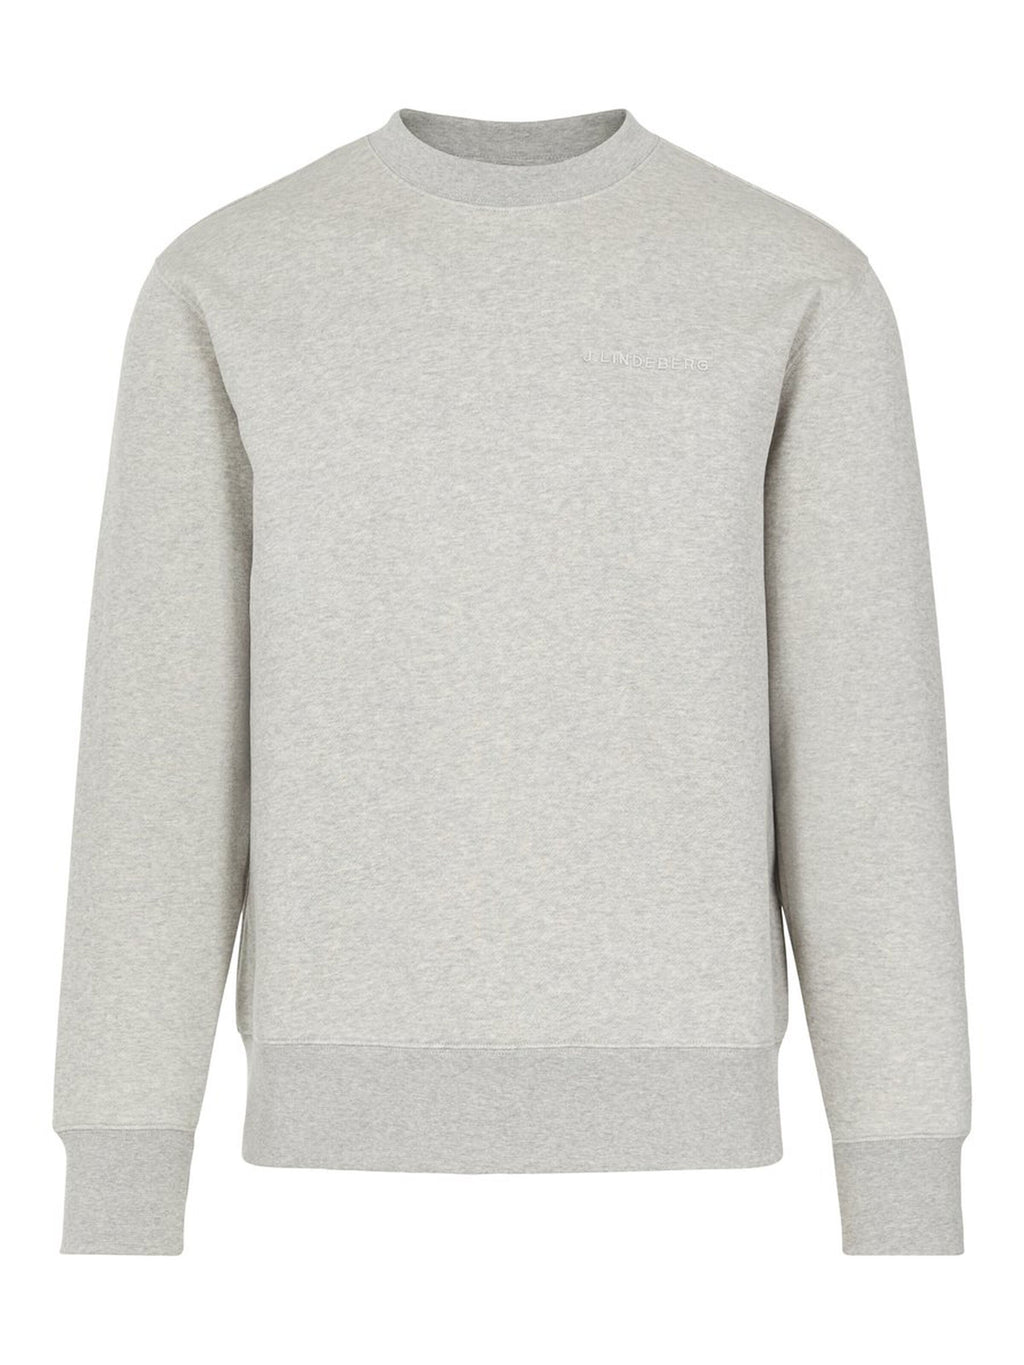 Chip Stone Grey Crew Neck Sweatshirt